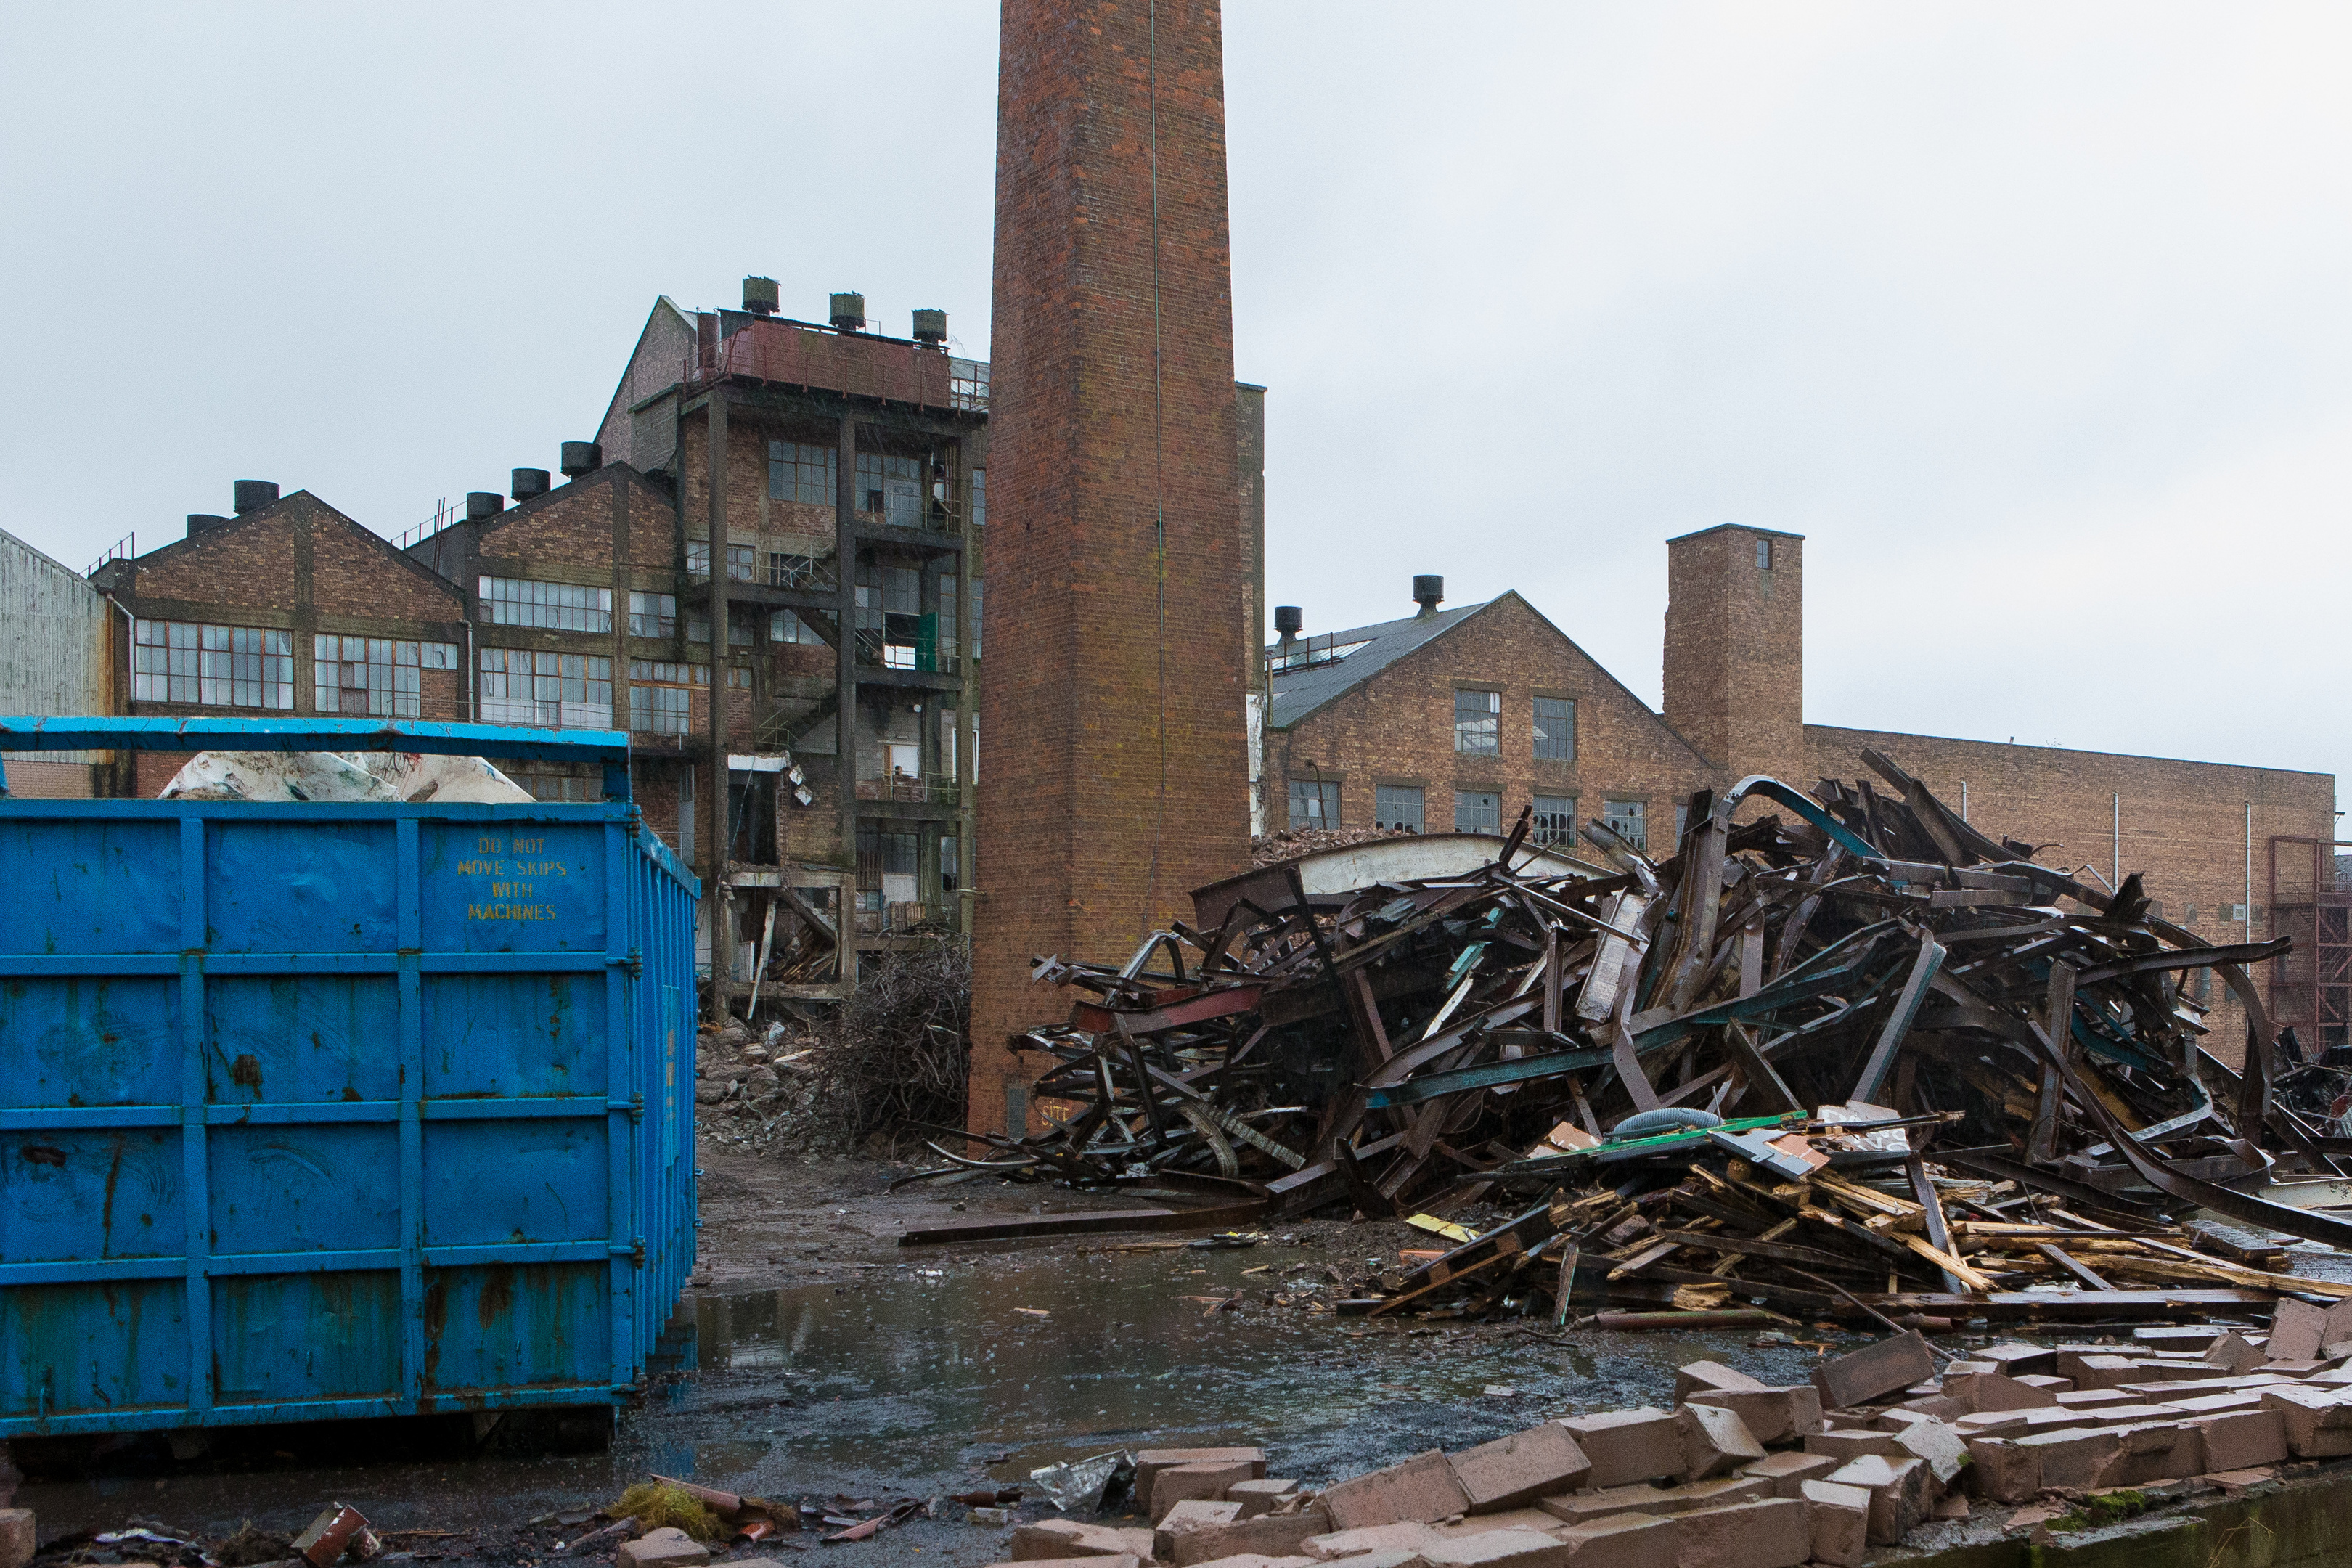 The demolition process is under way.